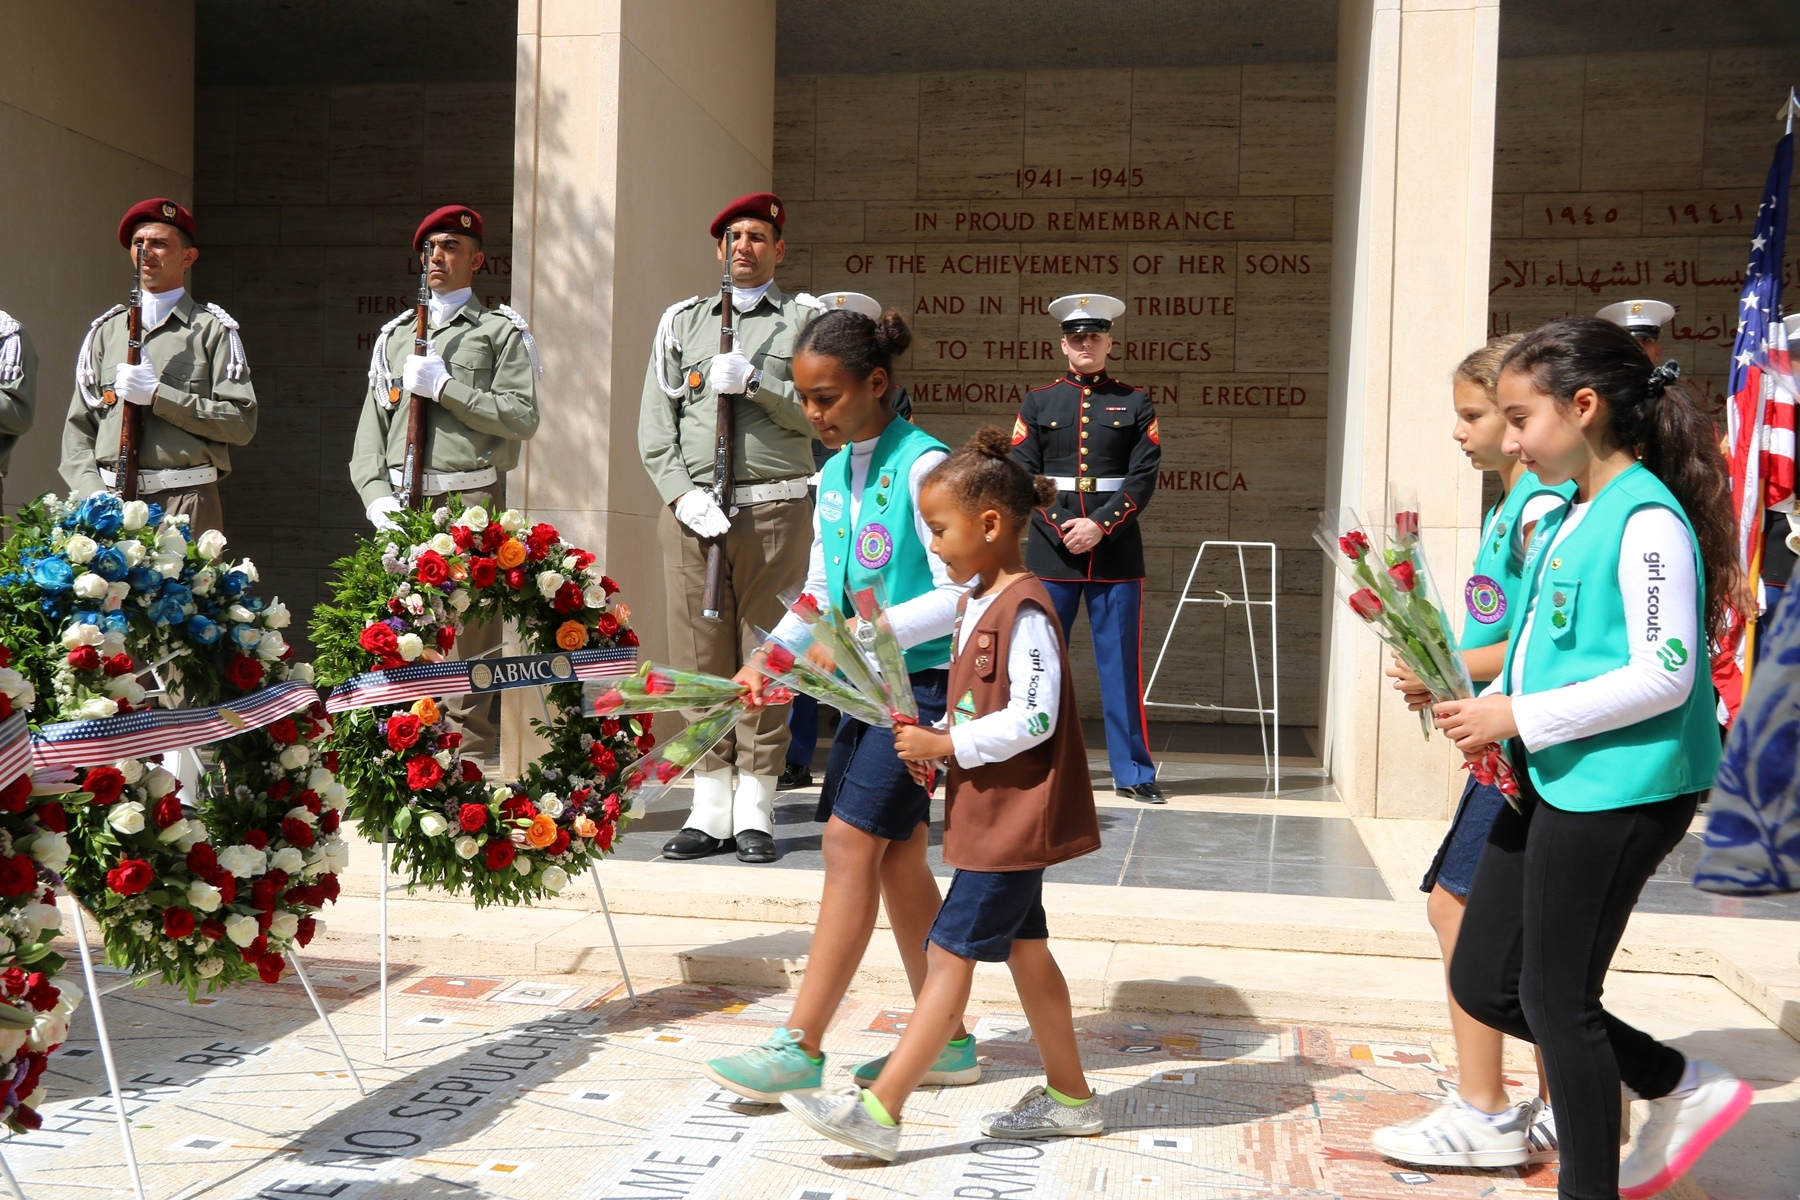 Members of a local Girl Scout troop lay flowers in honor of American servicemen as part of the Memorial Day ceremony in Carthage, Tunisia, May 28, 2018. (Photo by Zouhaier SFAXI, U.S. Embassy Tunis)